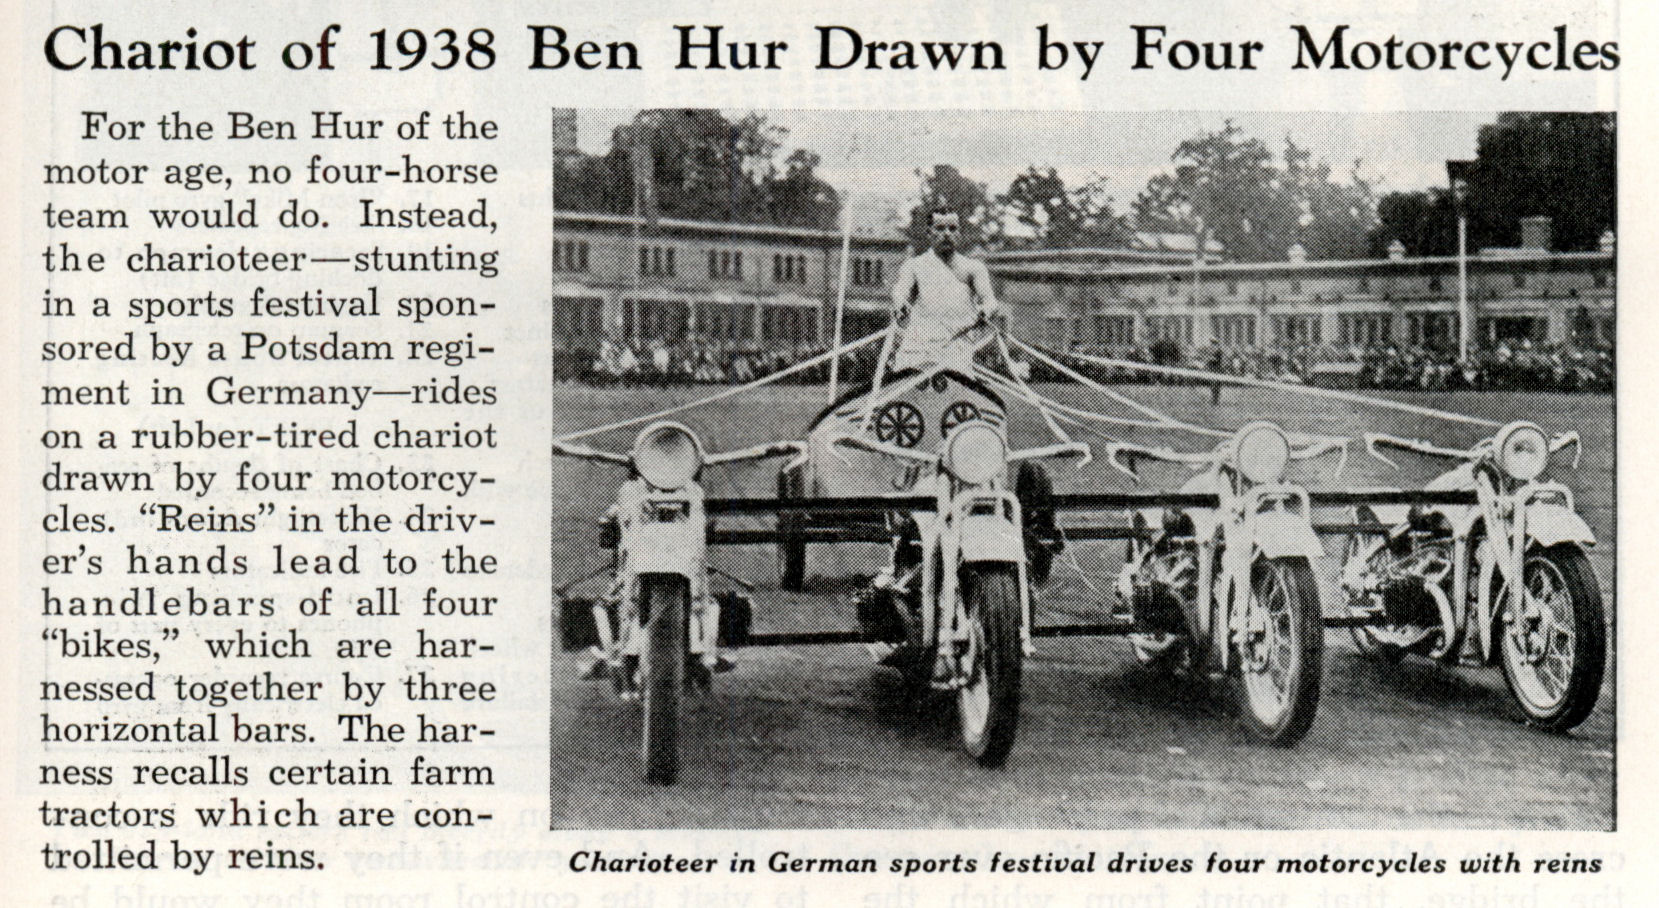 Four Motorcycle Chariot